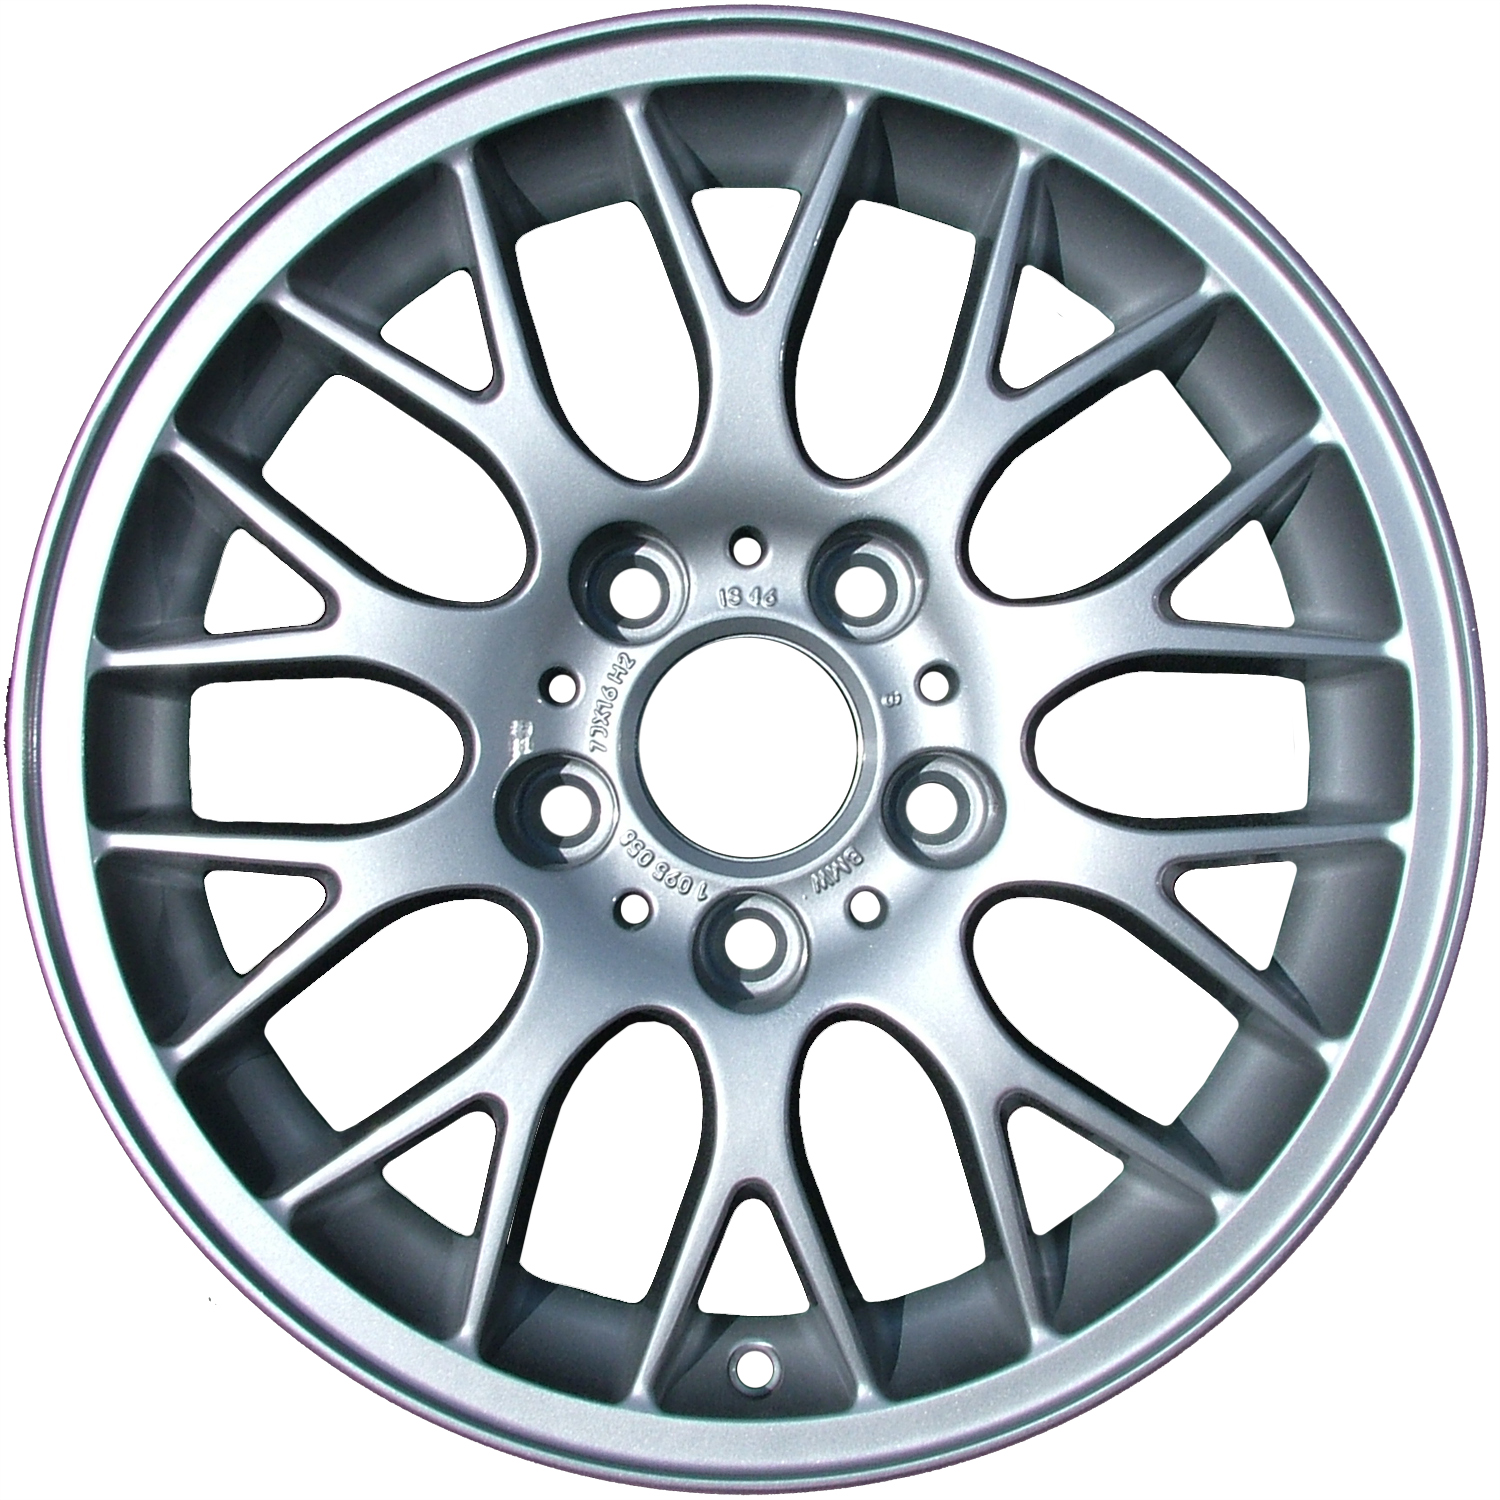 Oem reman 16x7 alloy wheel rim bright sparkle silver full face painted 59270